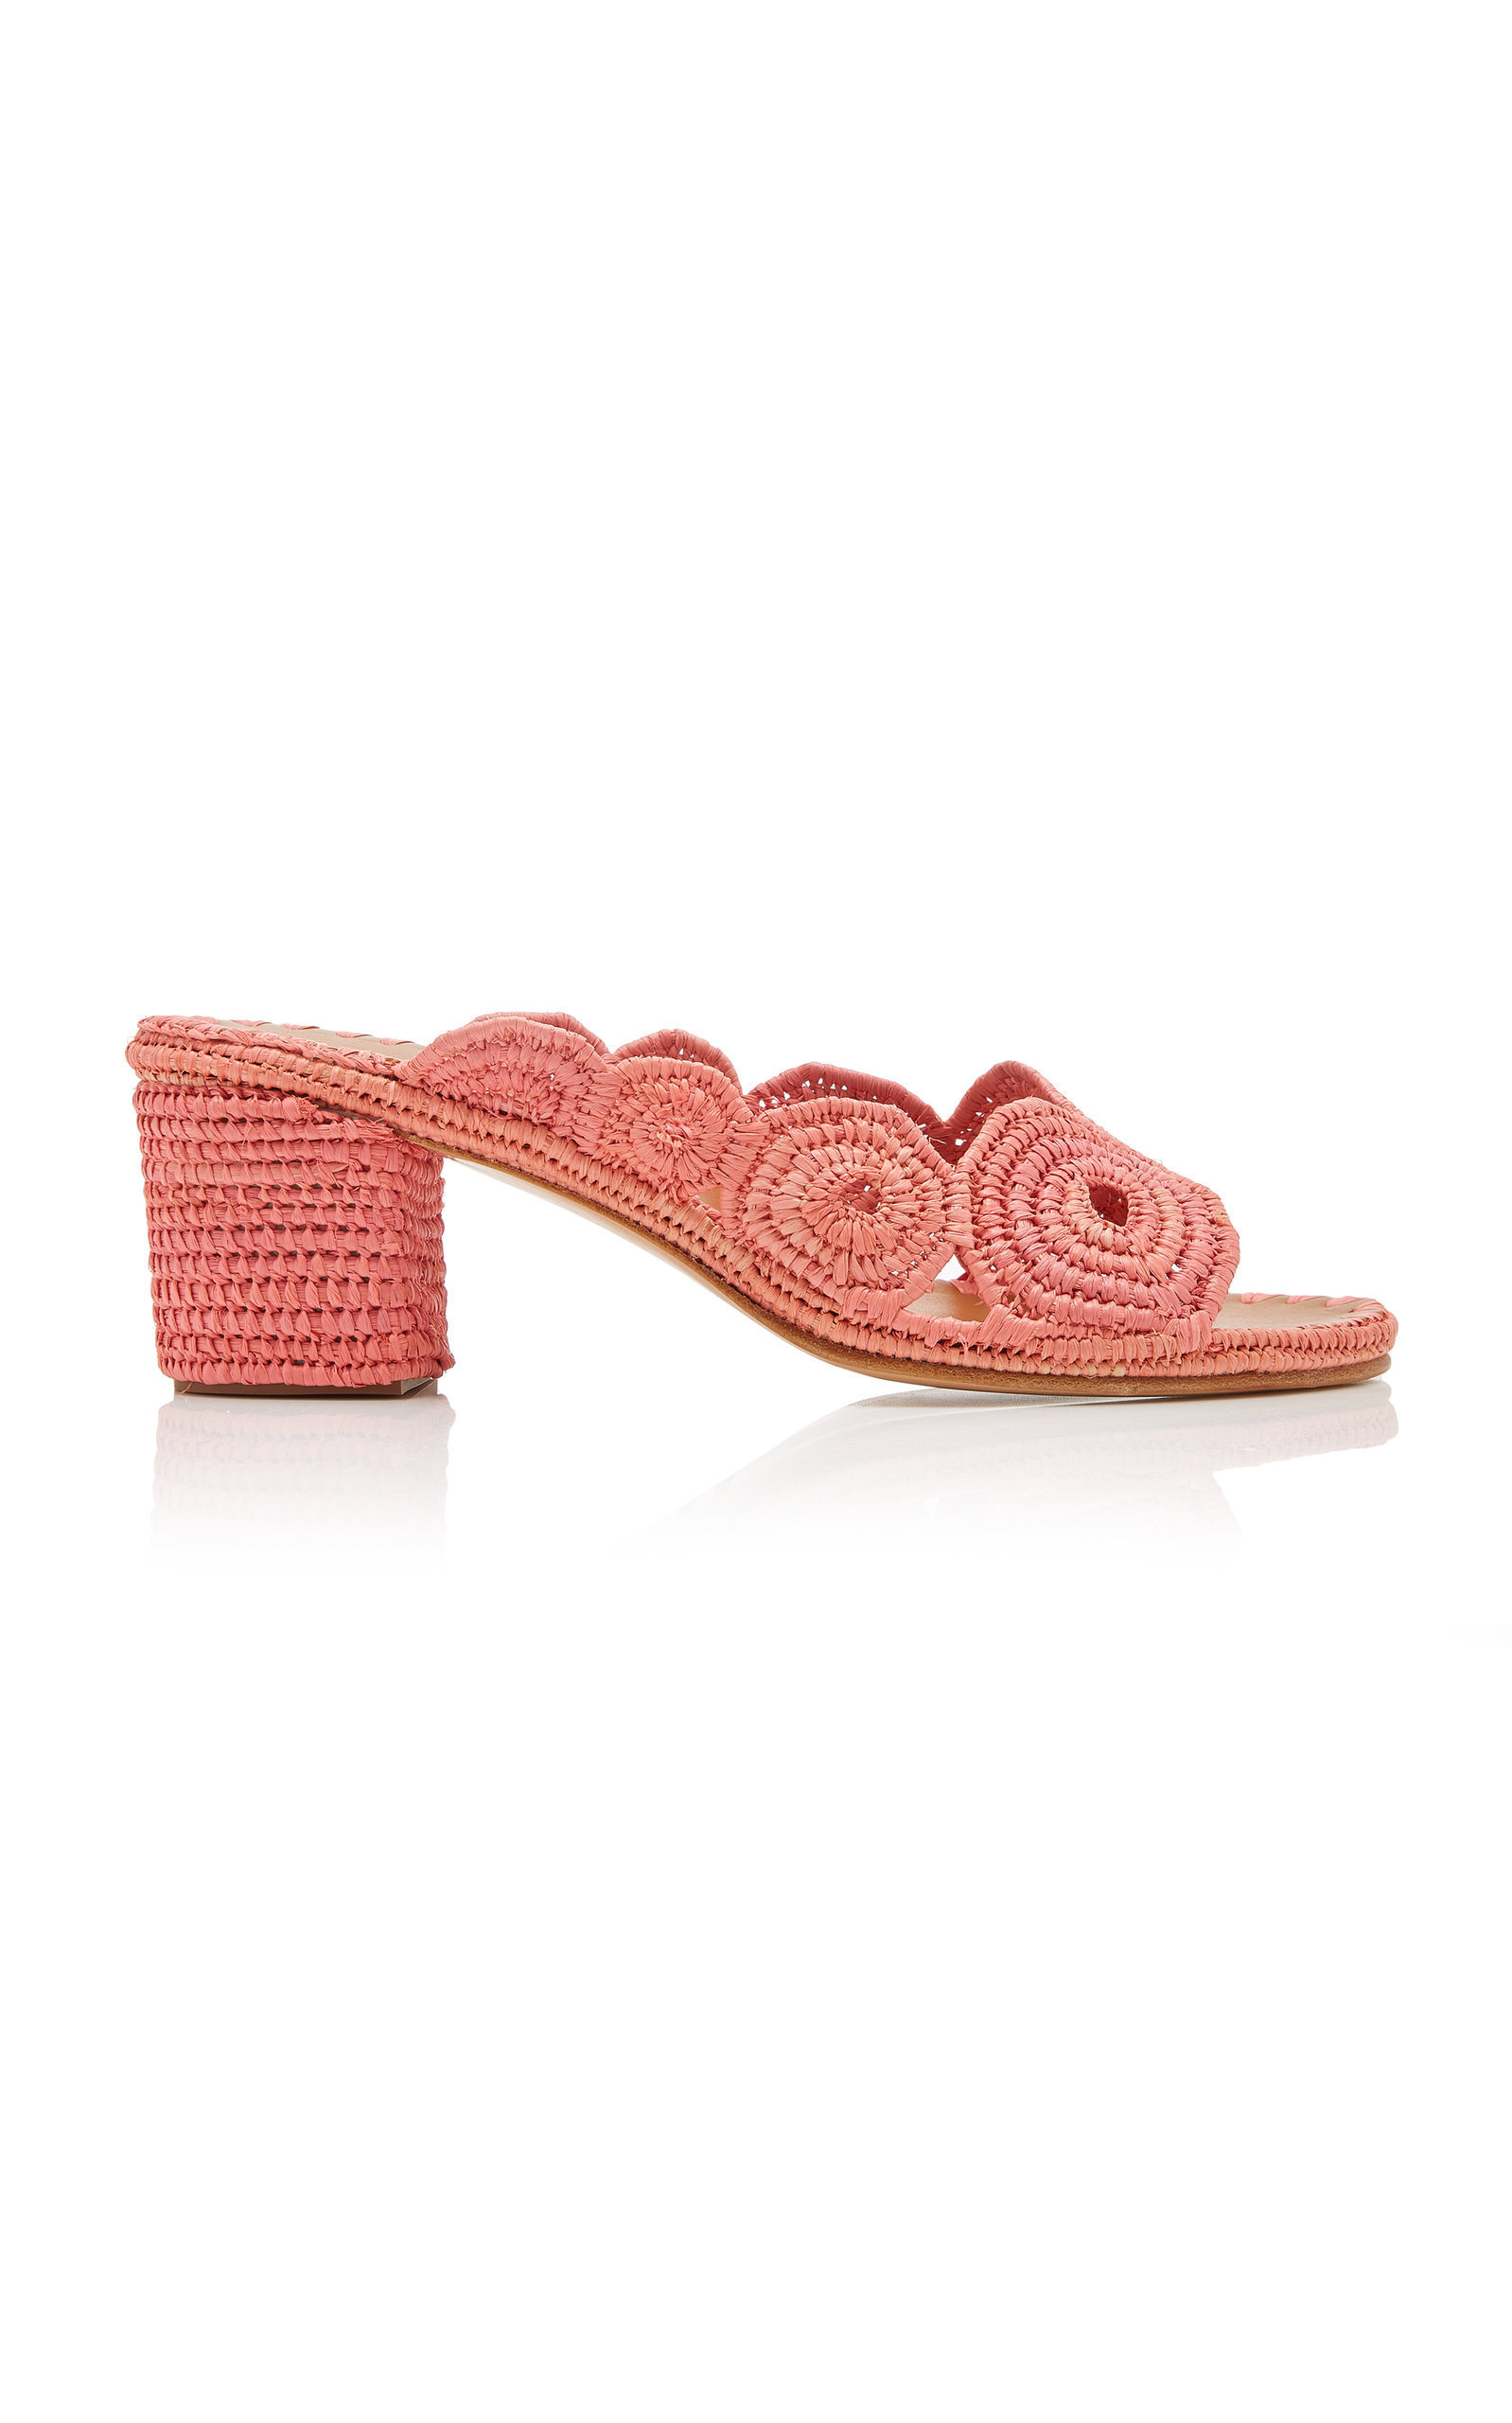 large_carrie-forbes-pink-ayoub-raffia-mules.jpg